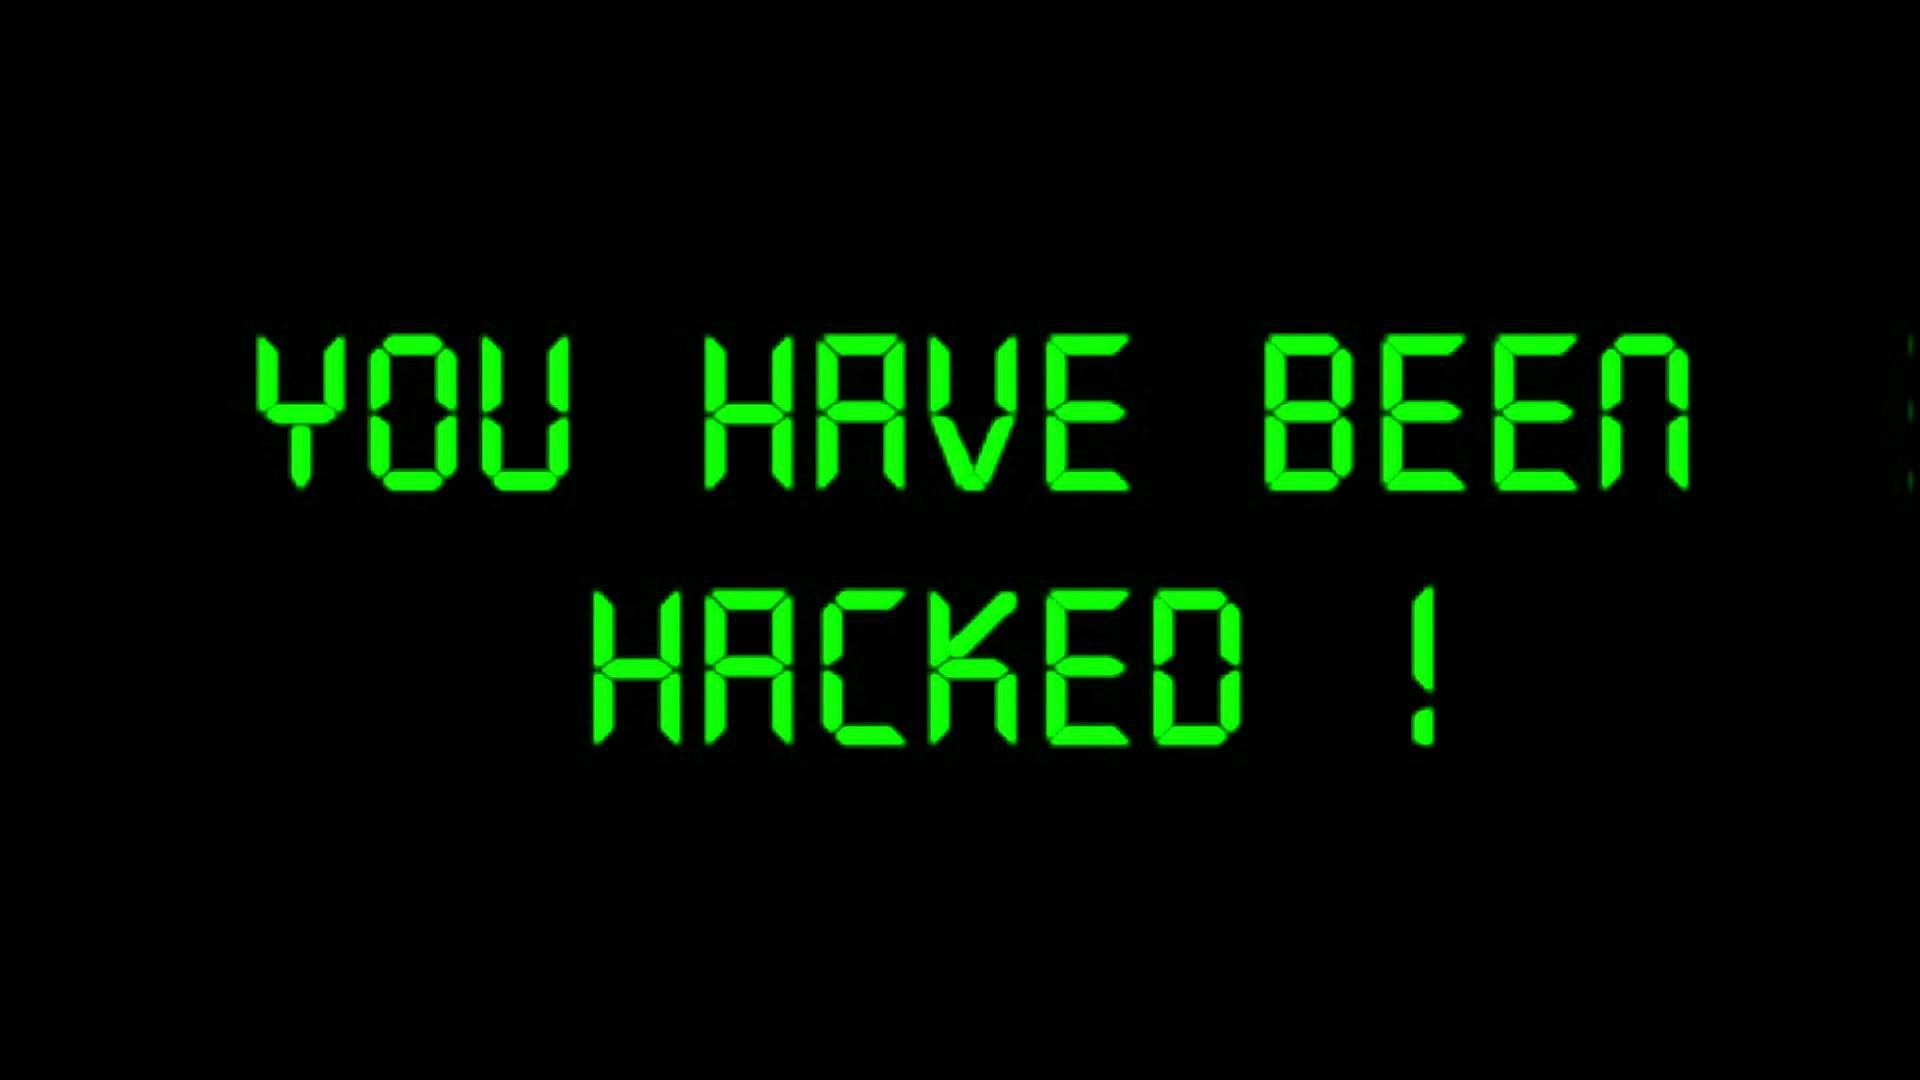 Reasons of why getting hacked hamful for website